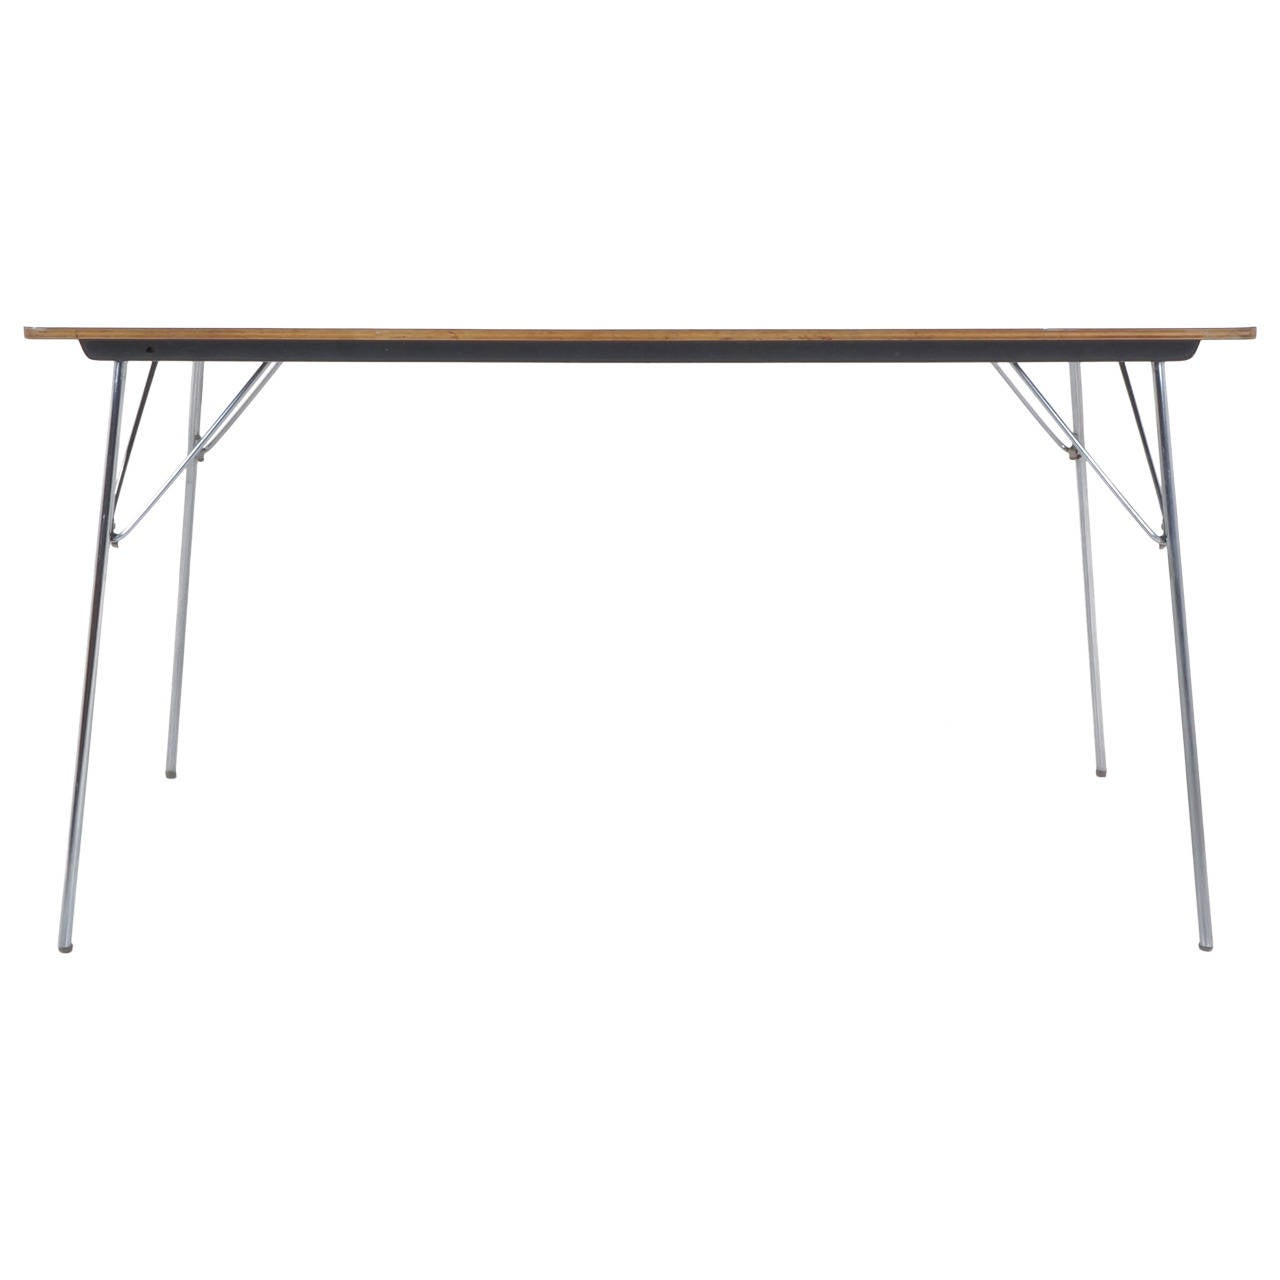 Rare Charles And Ray Eames Folding Leg Dining Table